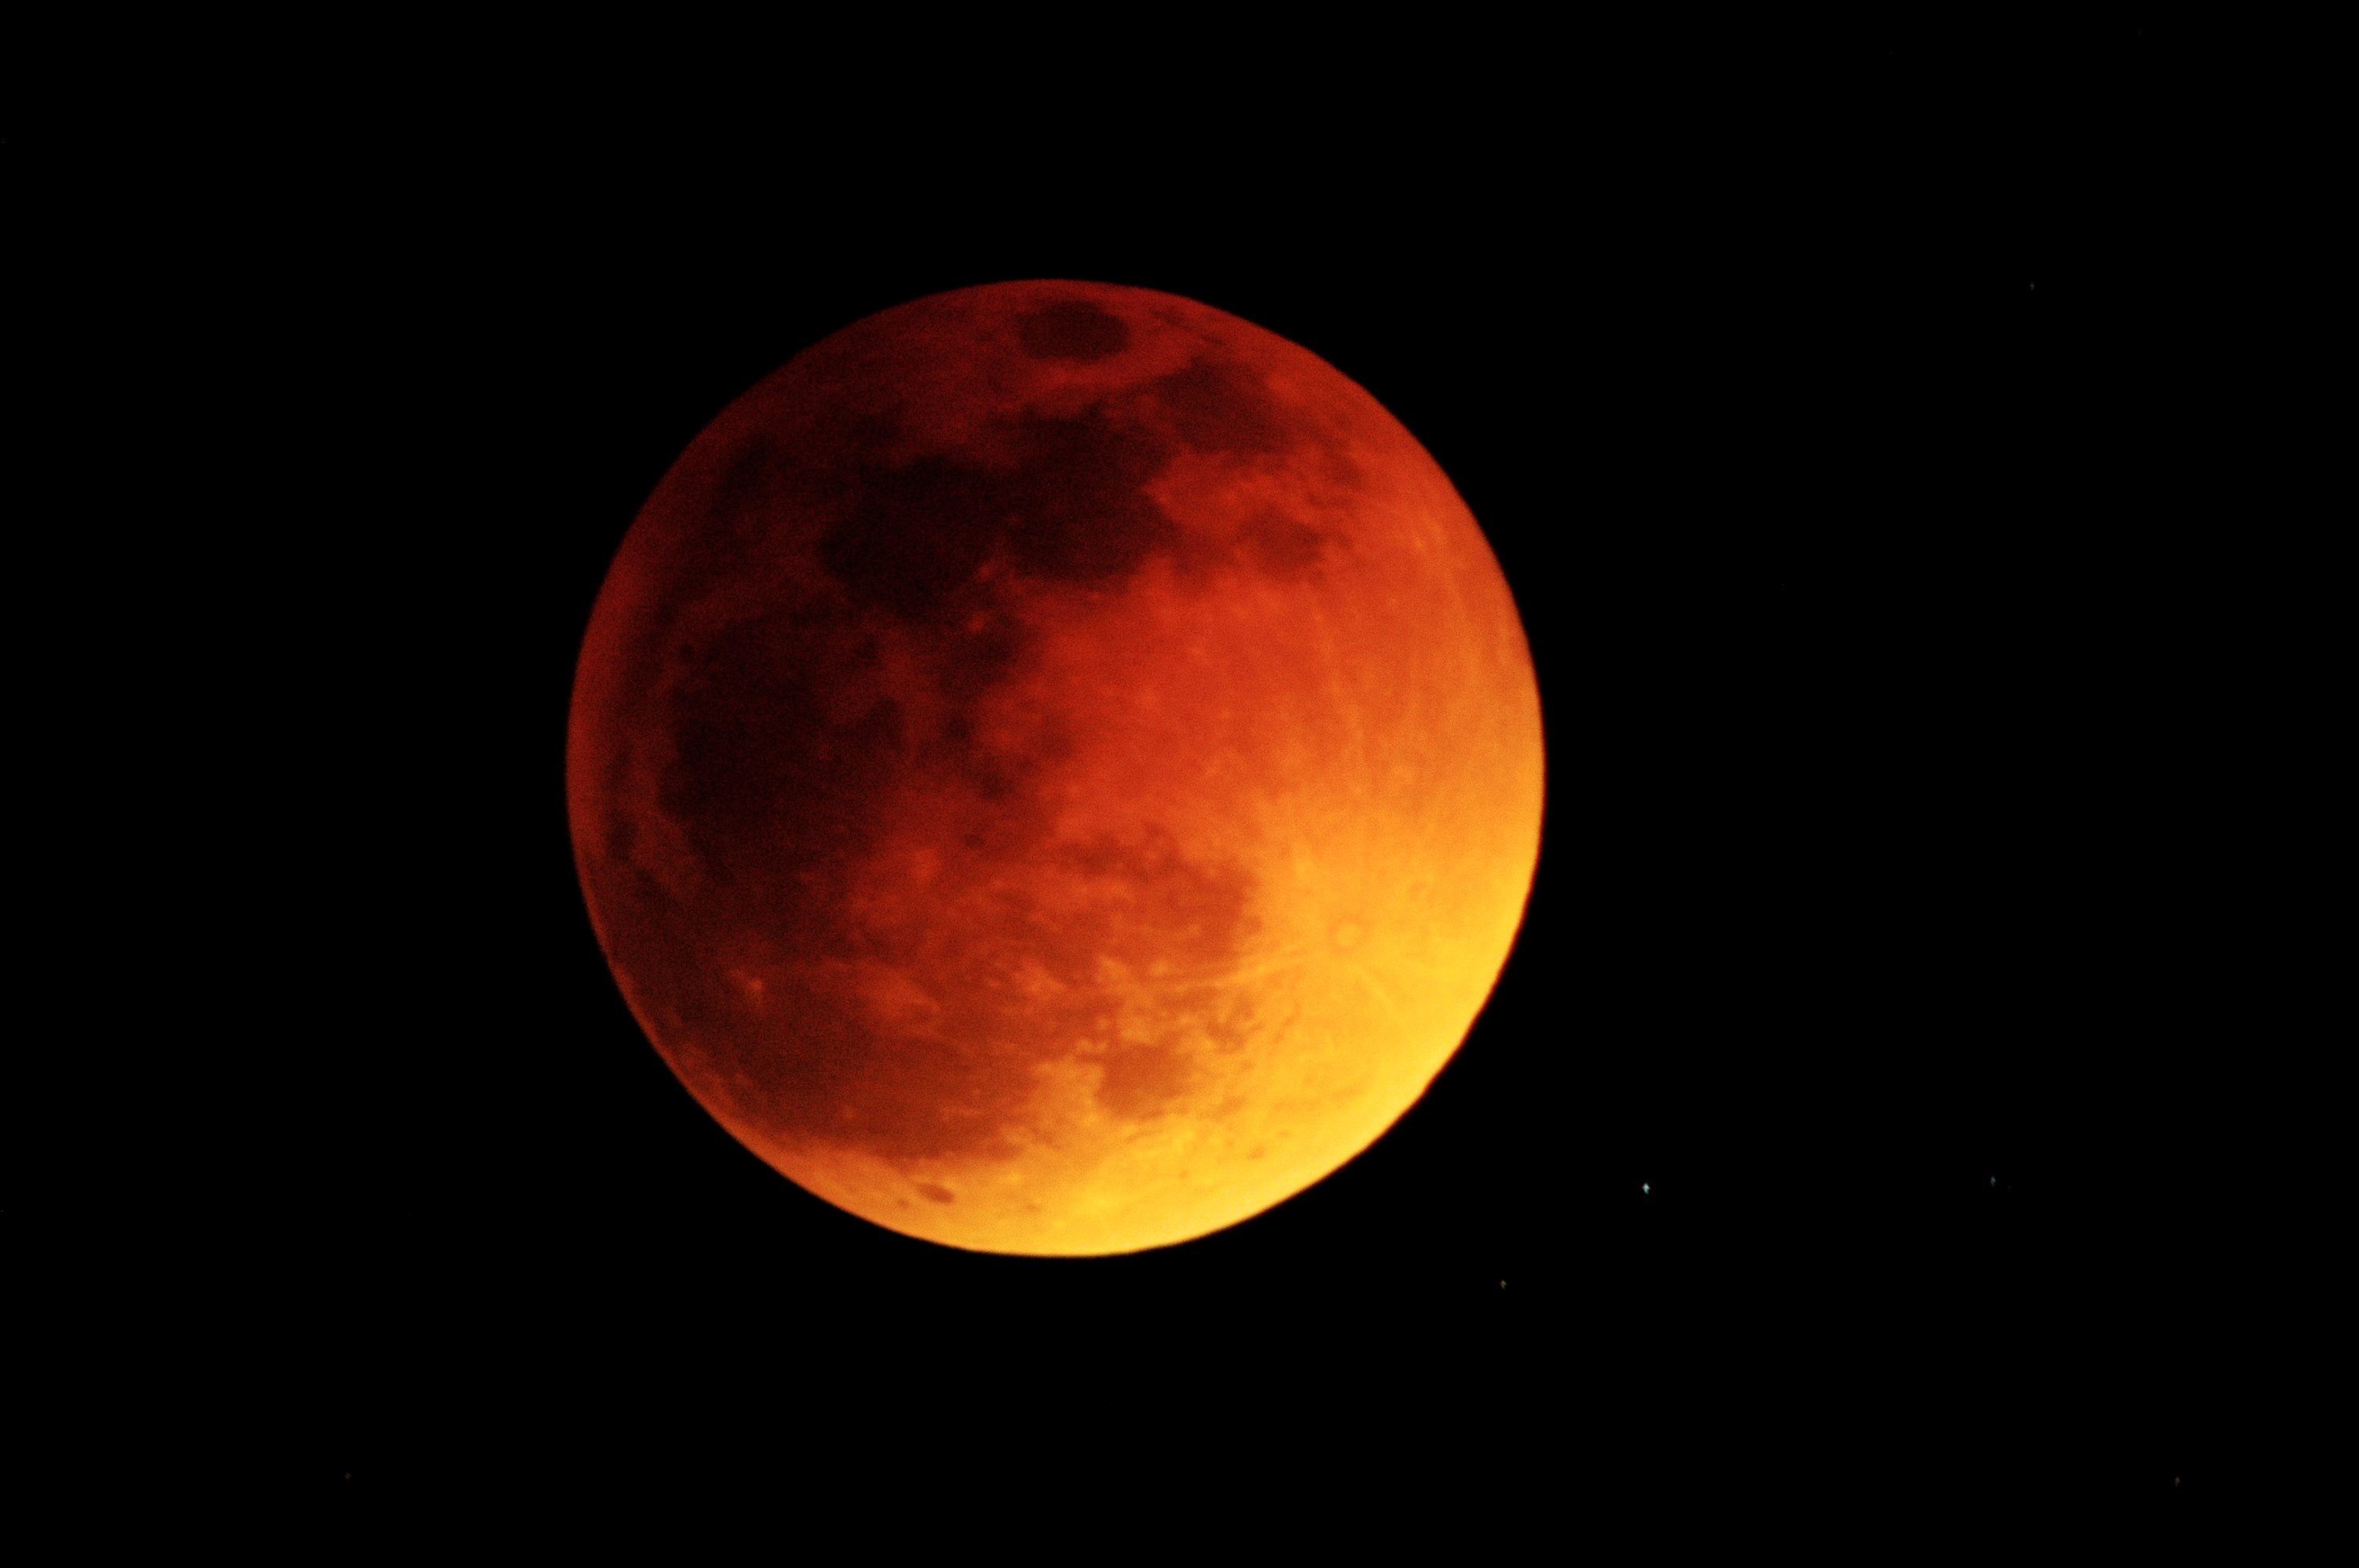 red moon during eclipse - photo #15